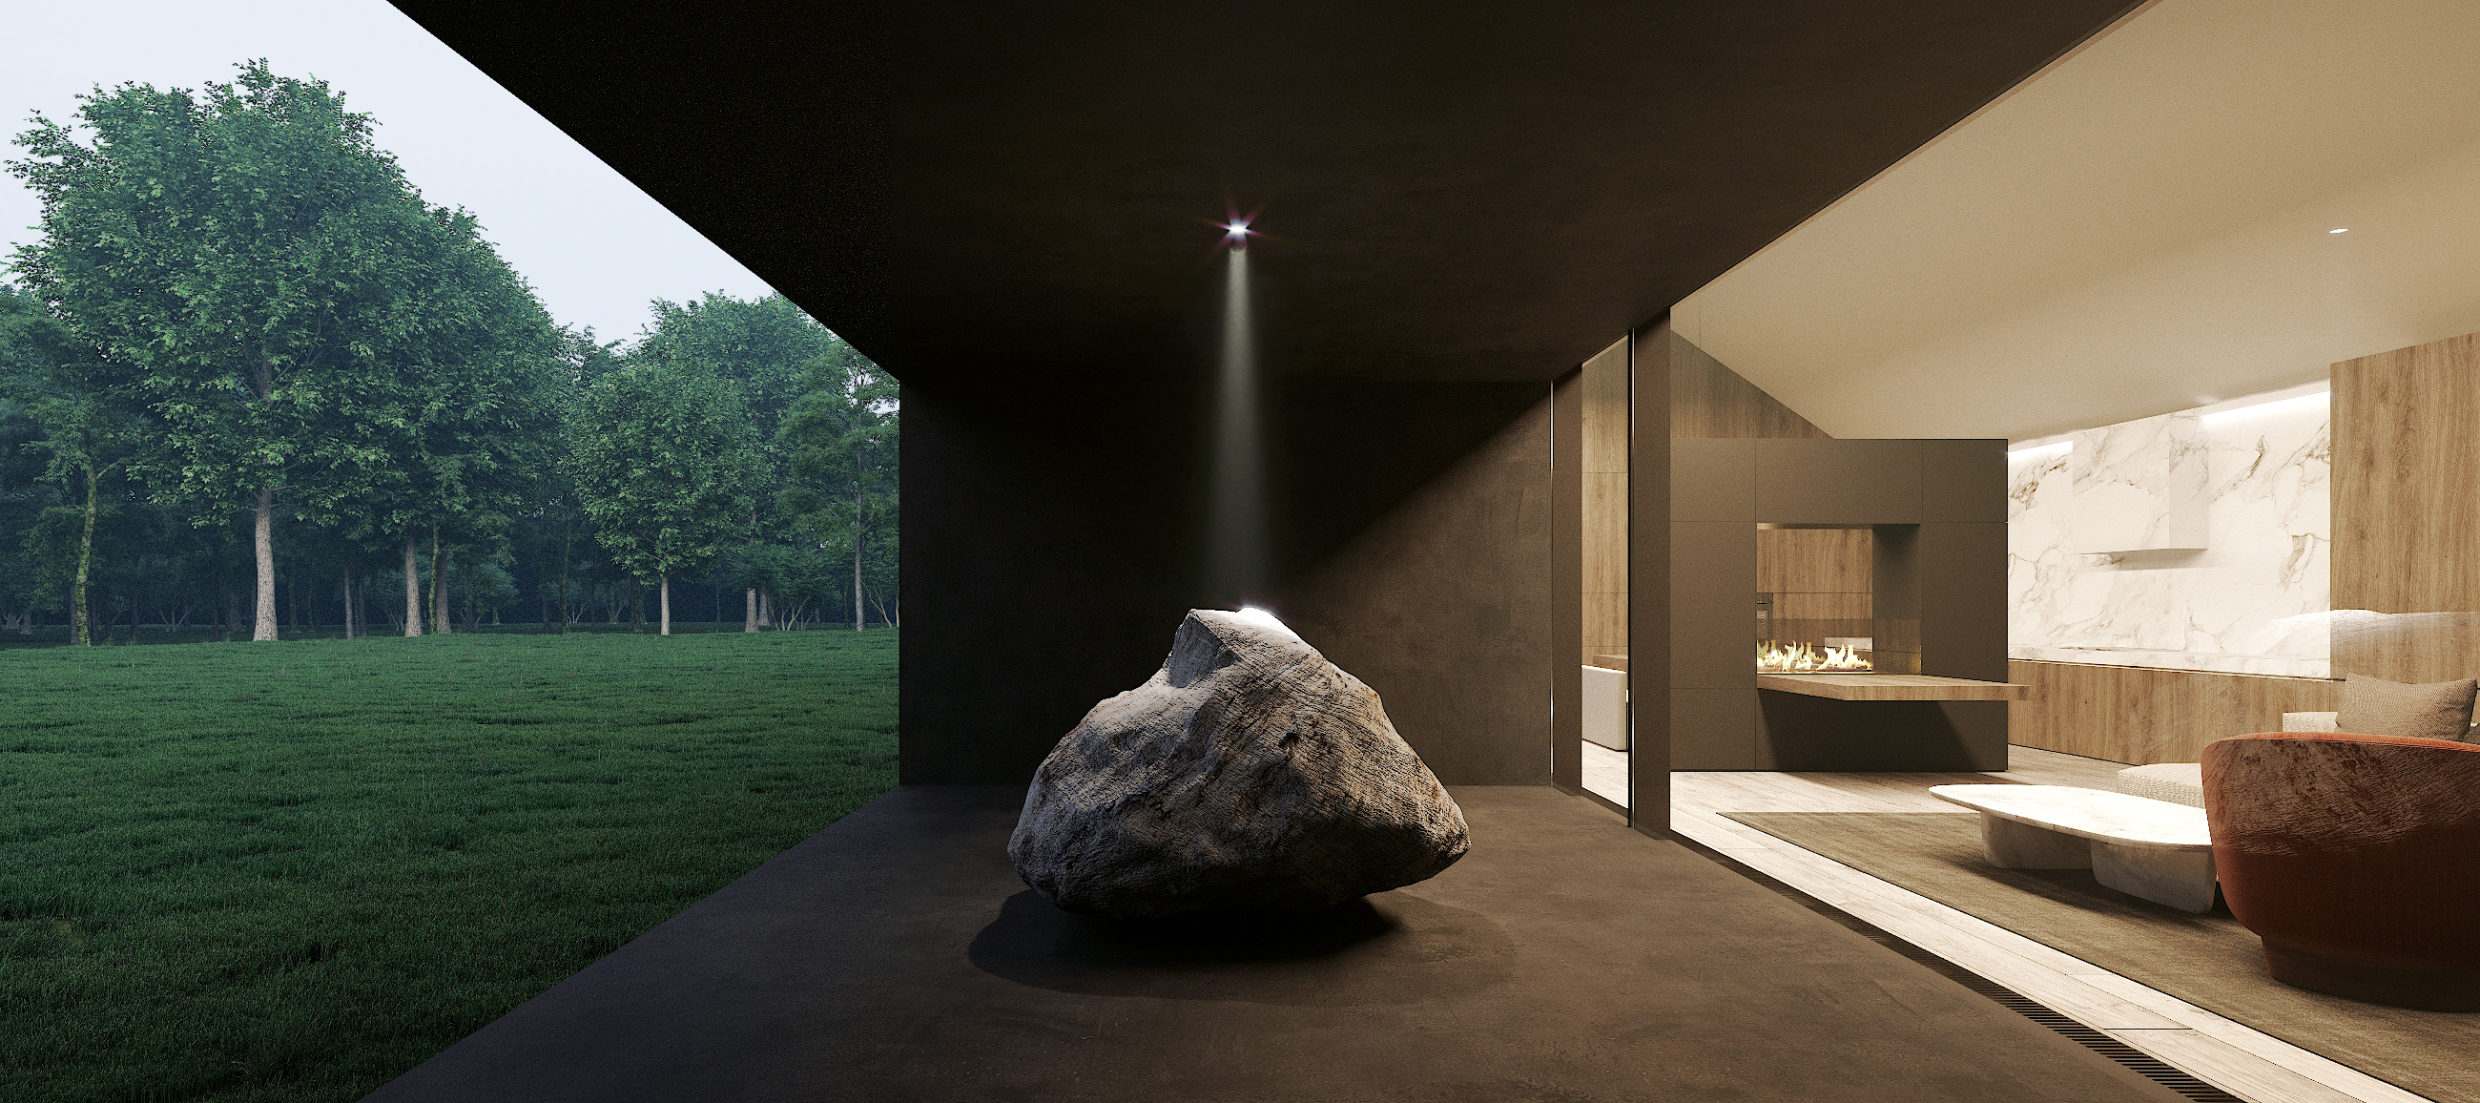 CONCEPT HOUSE lll 8